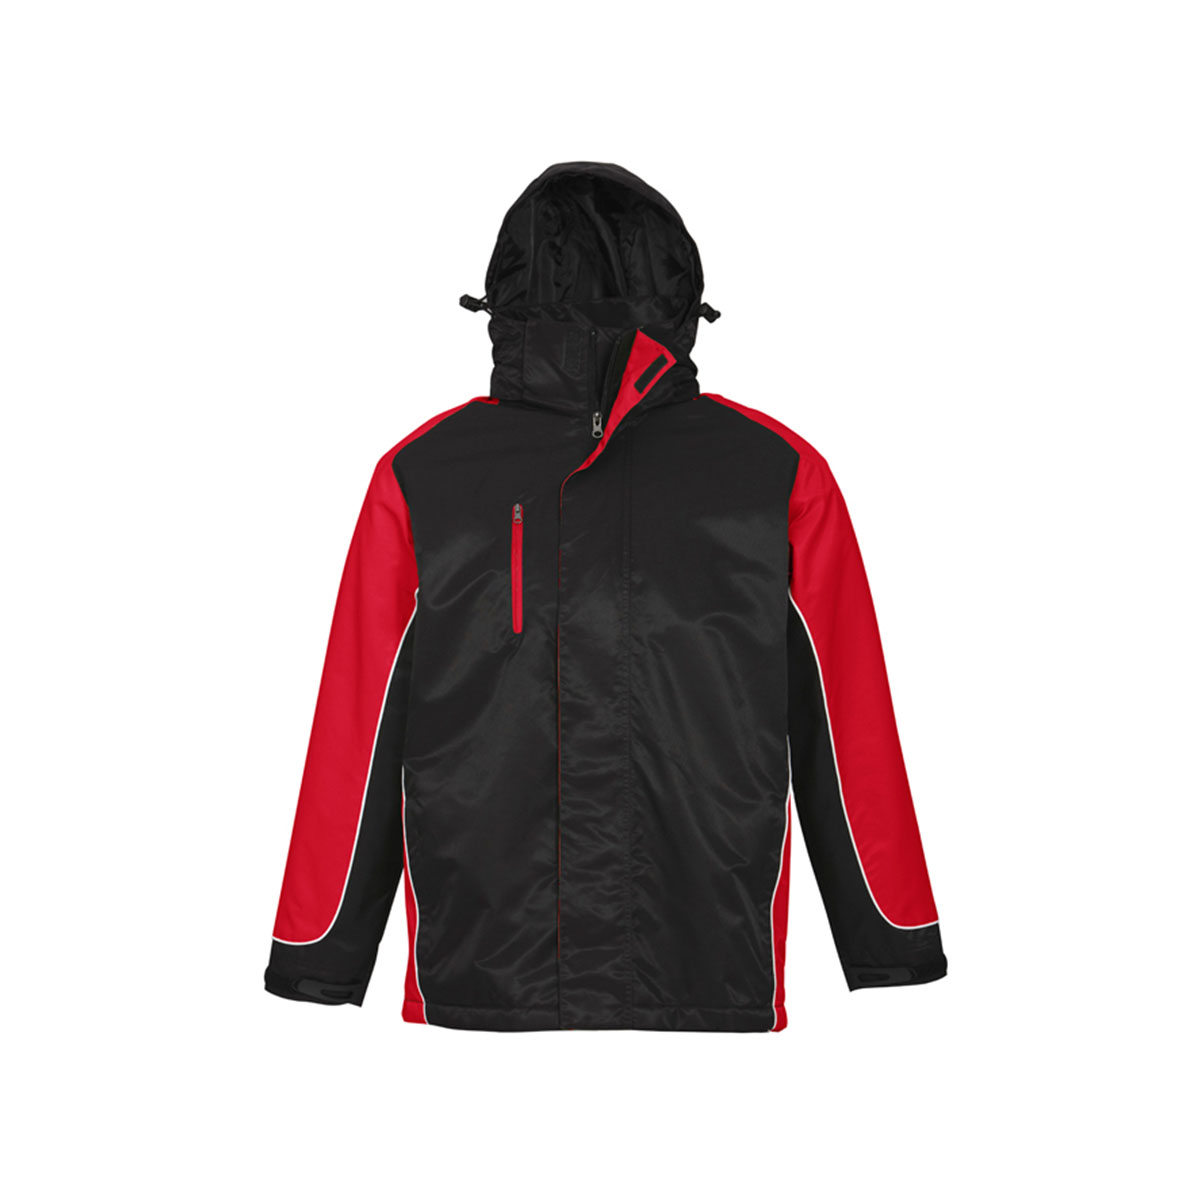 Unisex Nitro Jacket-Black / Red / White